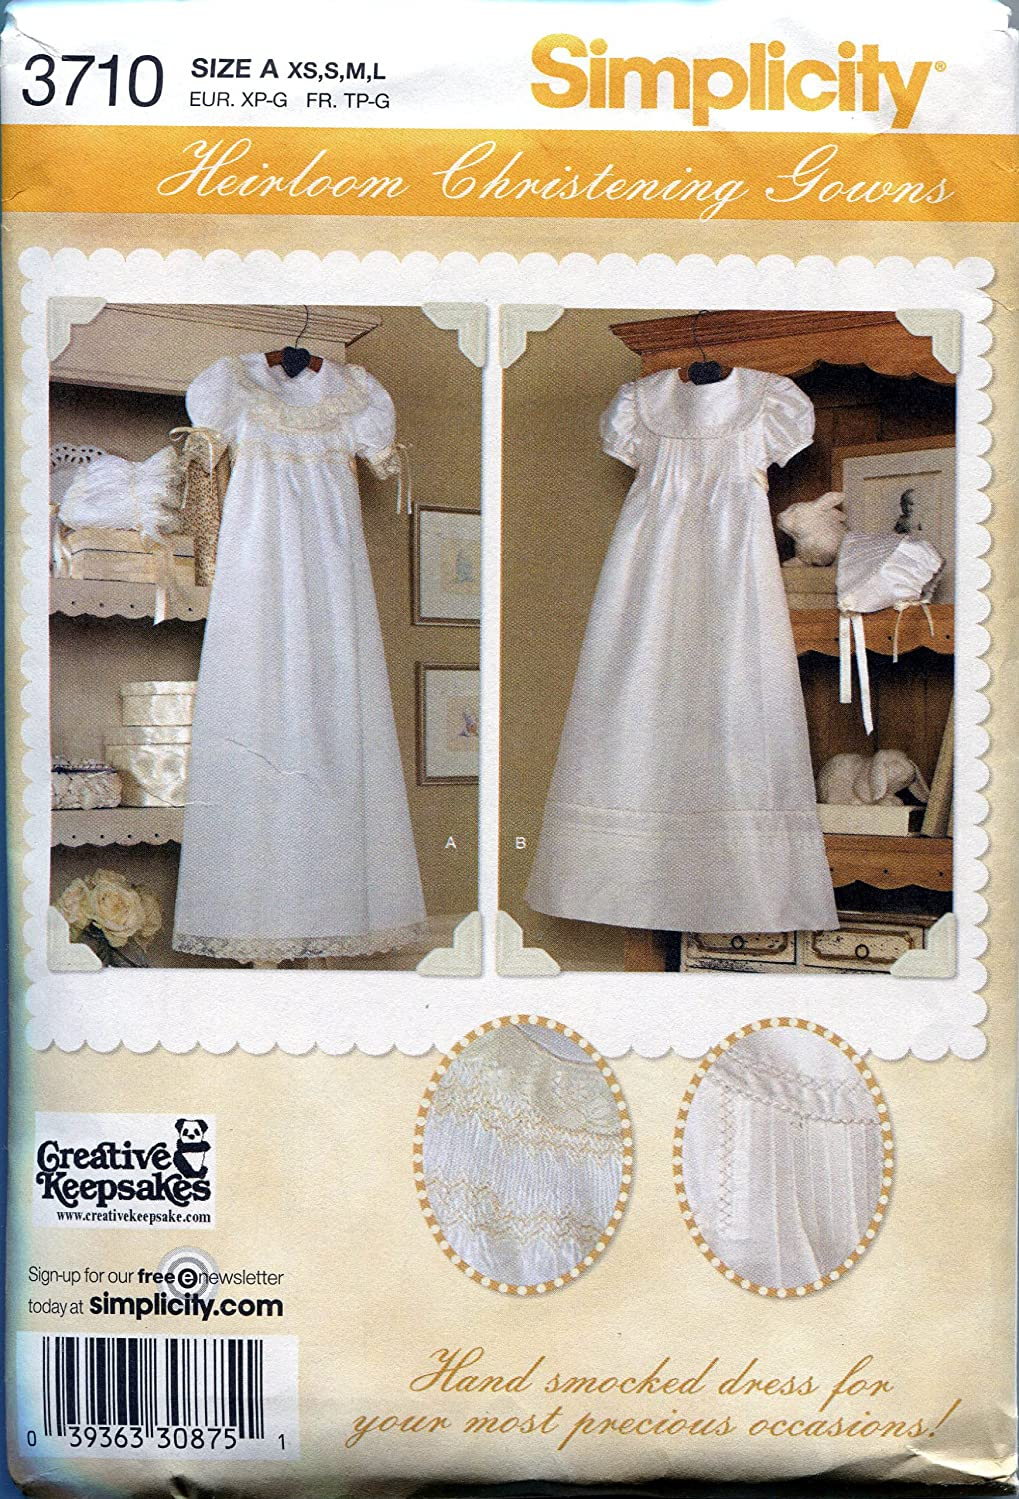 Simplicity Sewing Pattern 3710 Babies' Christening Gowns and Bonnets Including Smocking Instructions